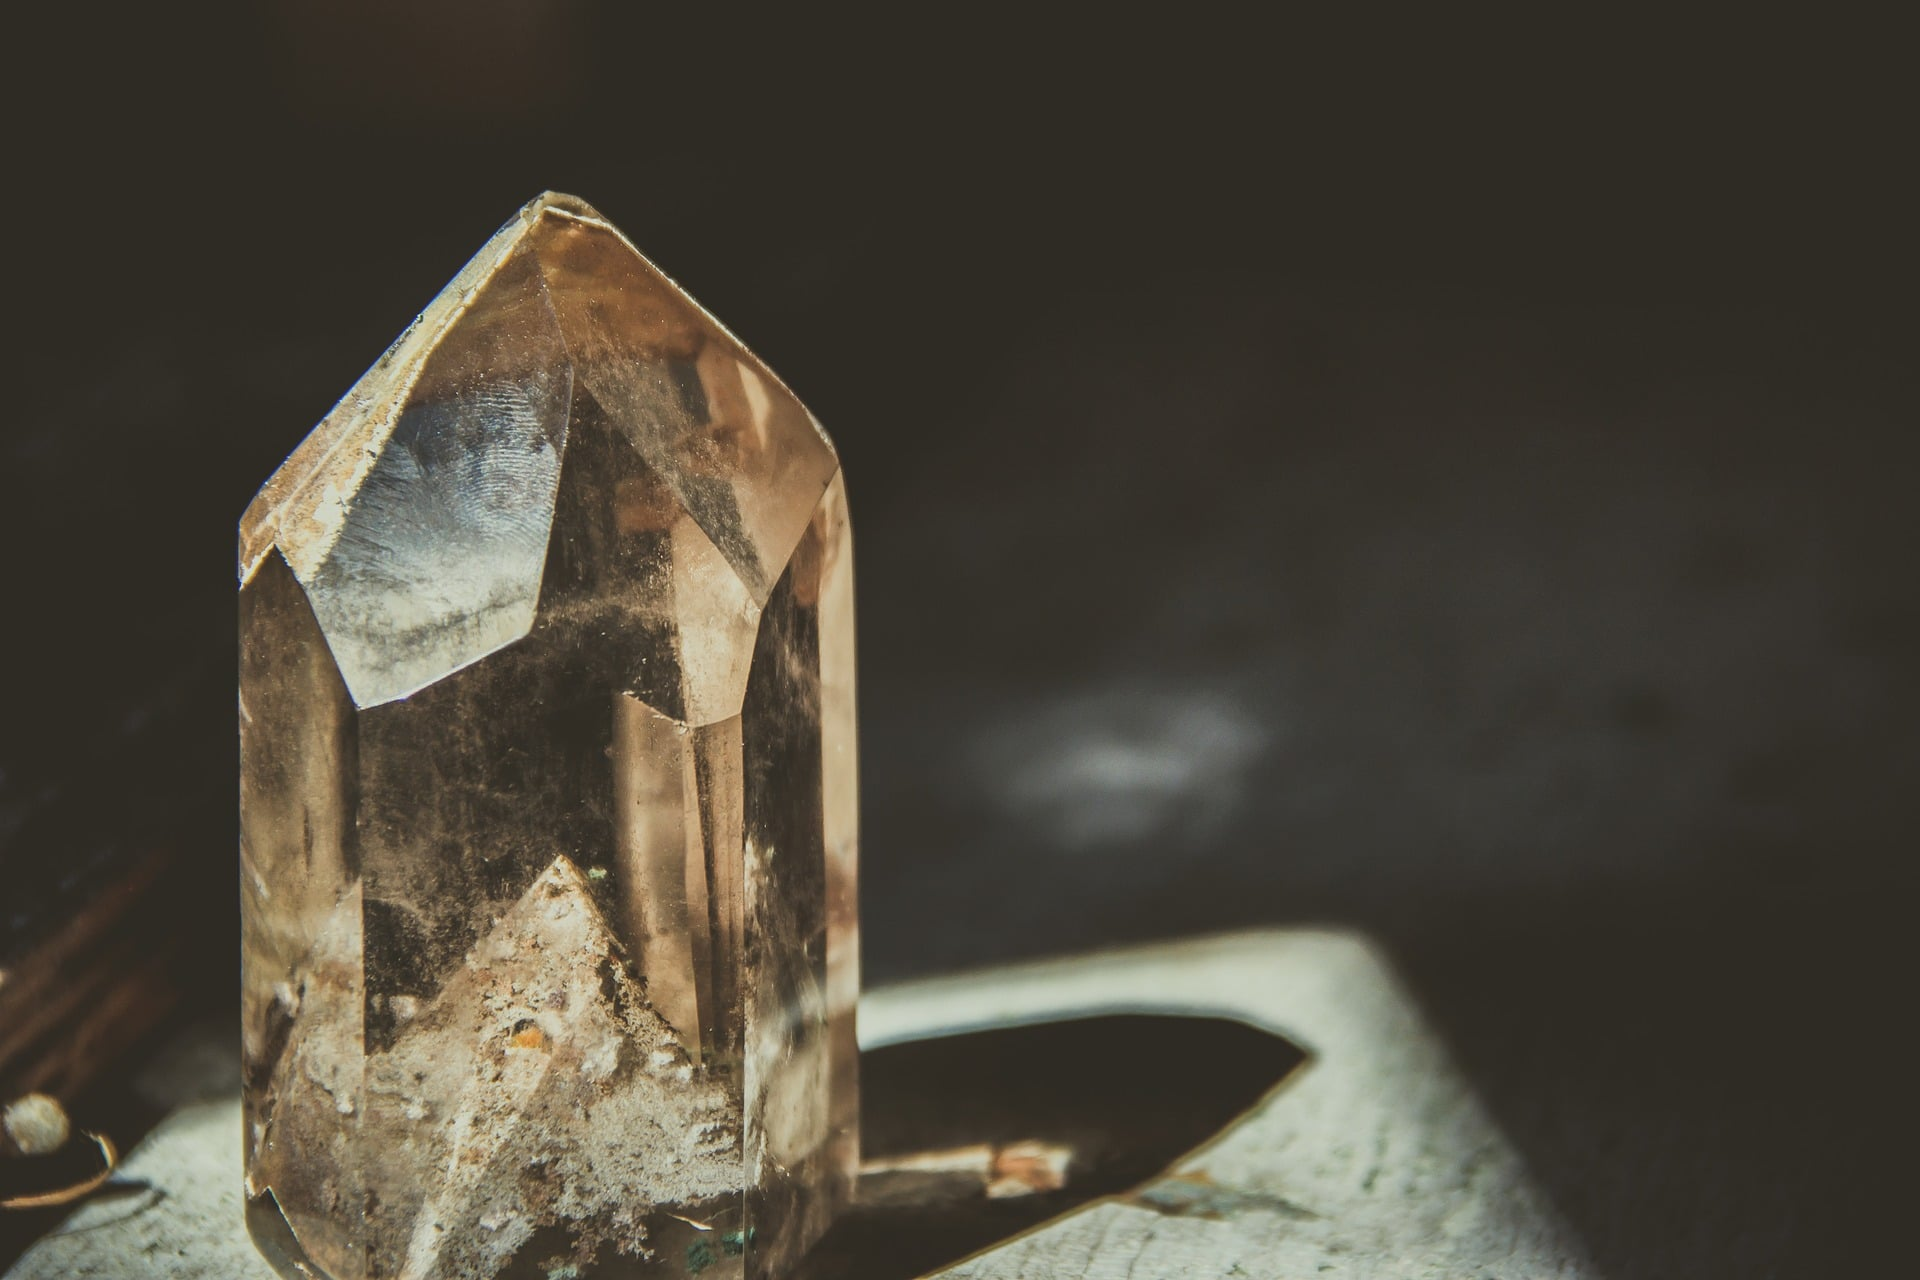 Quartz crystal with light shining on it from the left